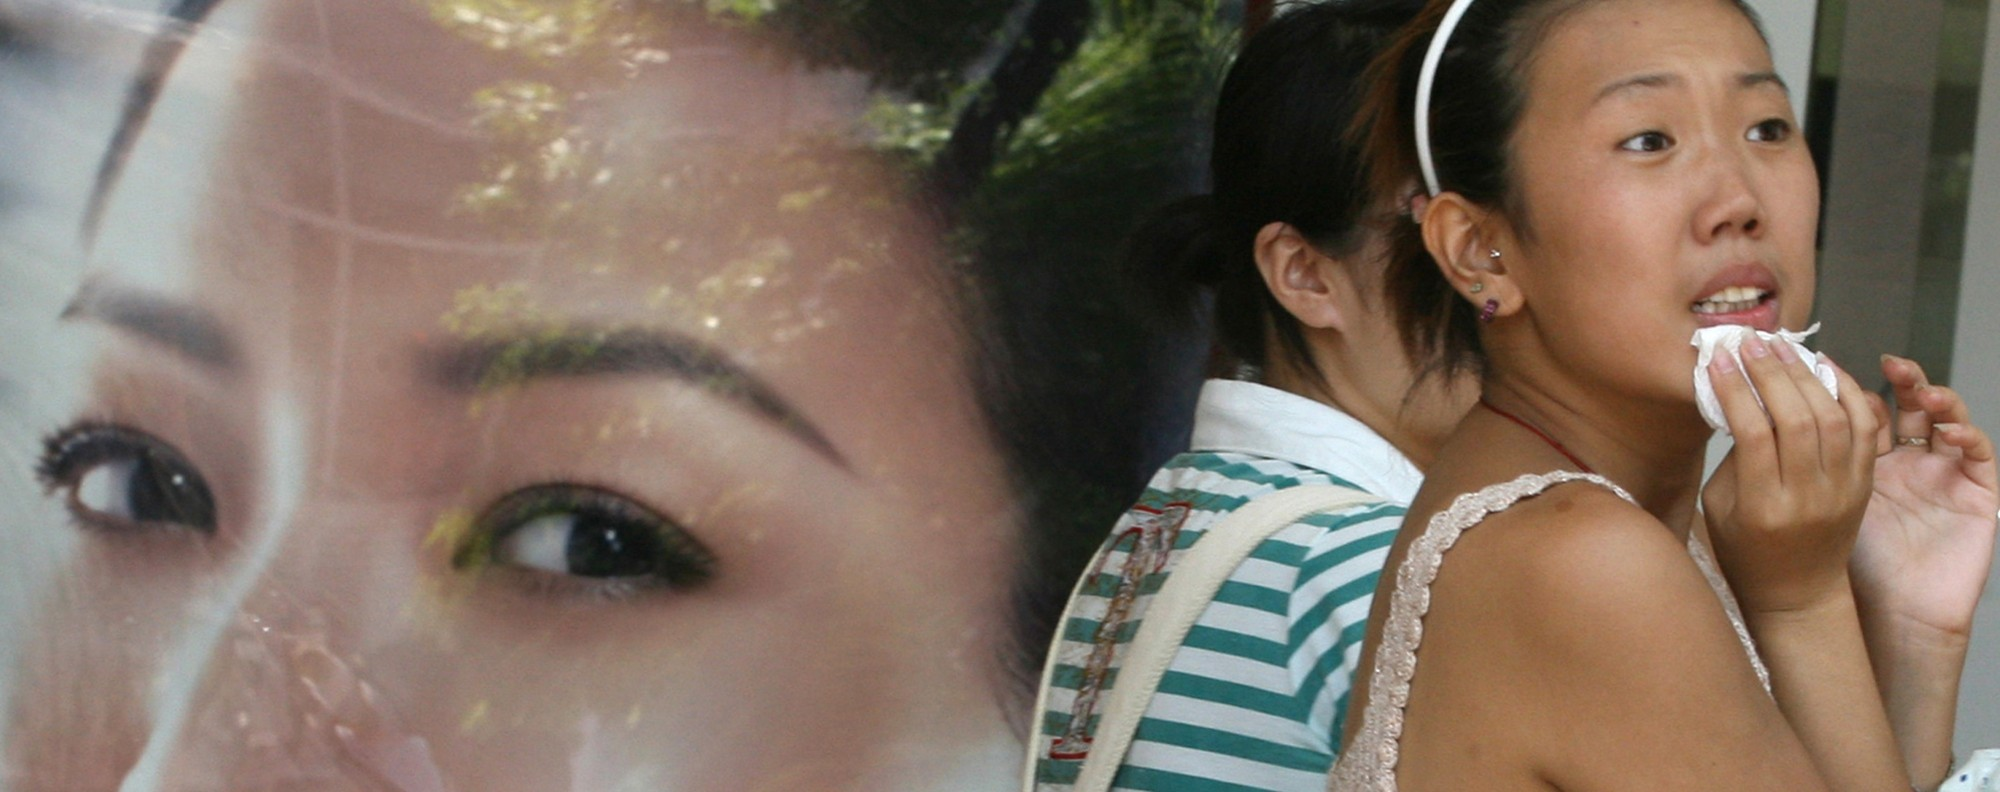 A woman in Shanghai walks past an advert for skin-whitening products. Photo: AFP